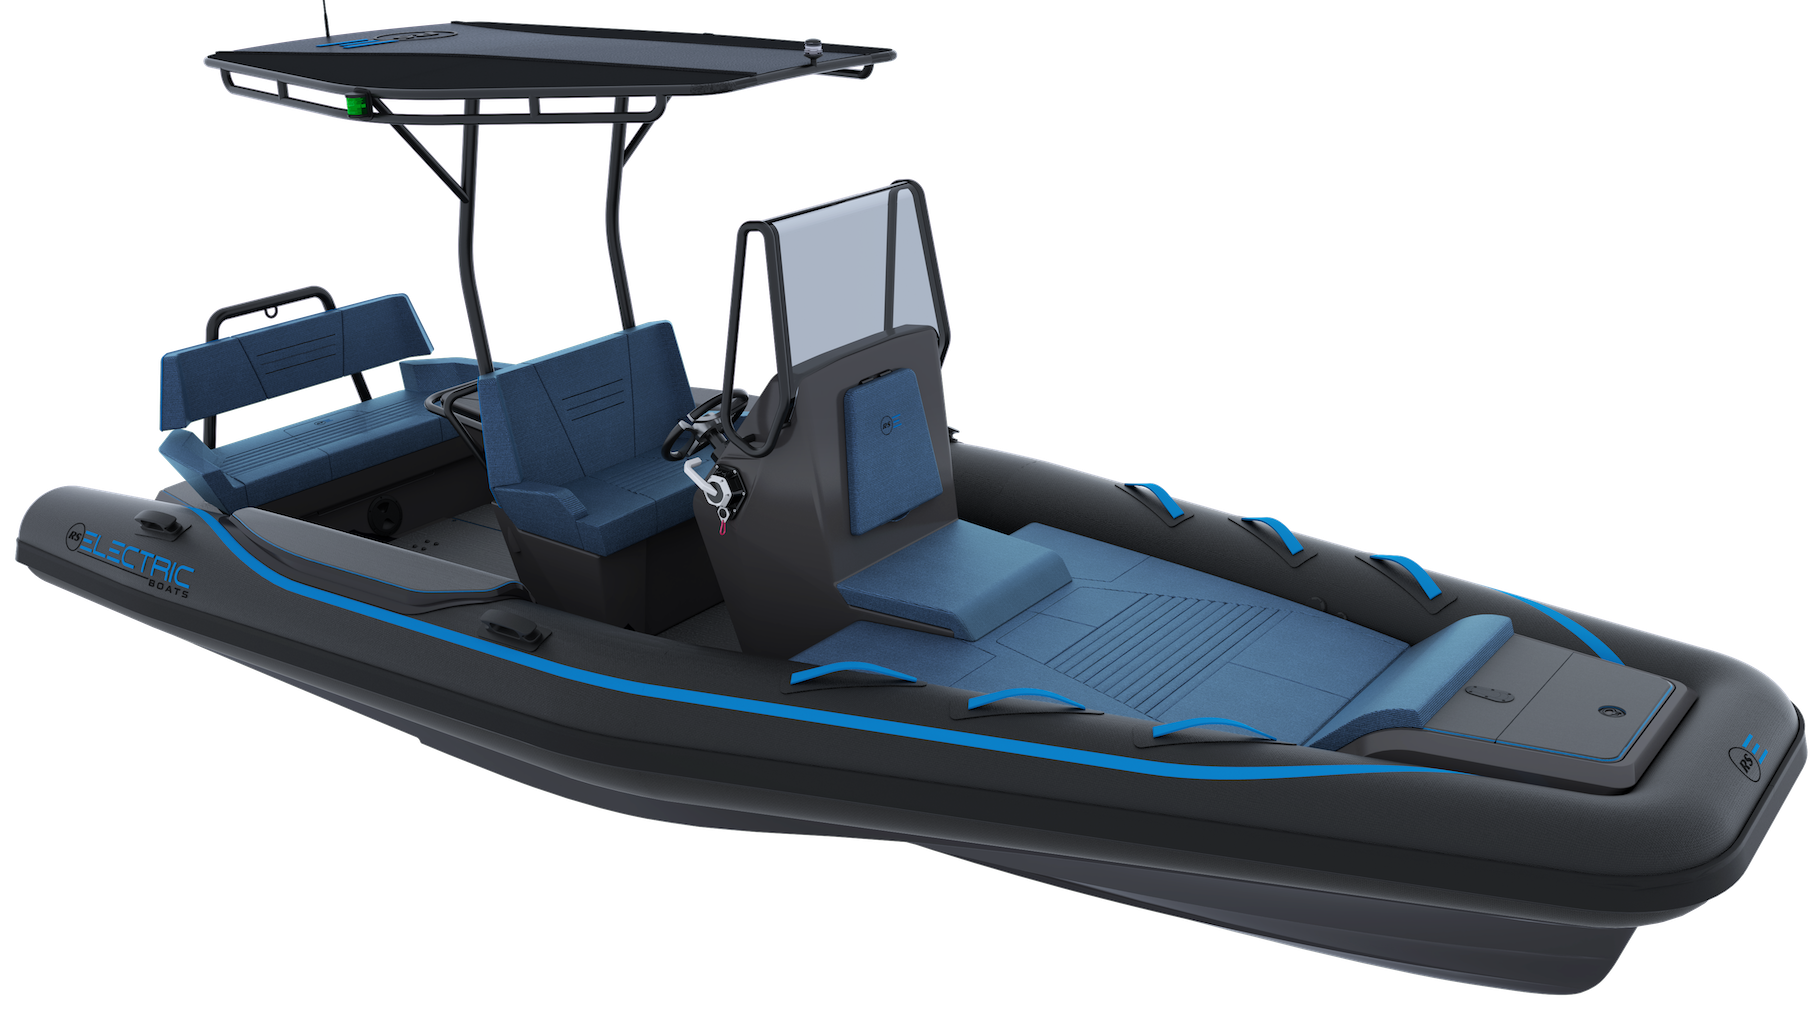 Electric Leisure RIB - RS Electric Boats - Black - Front View